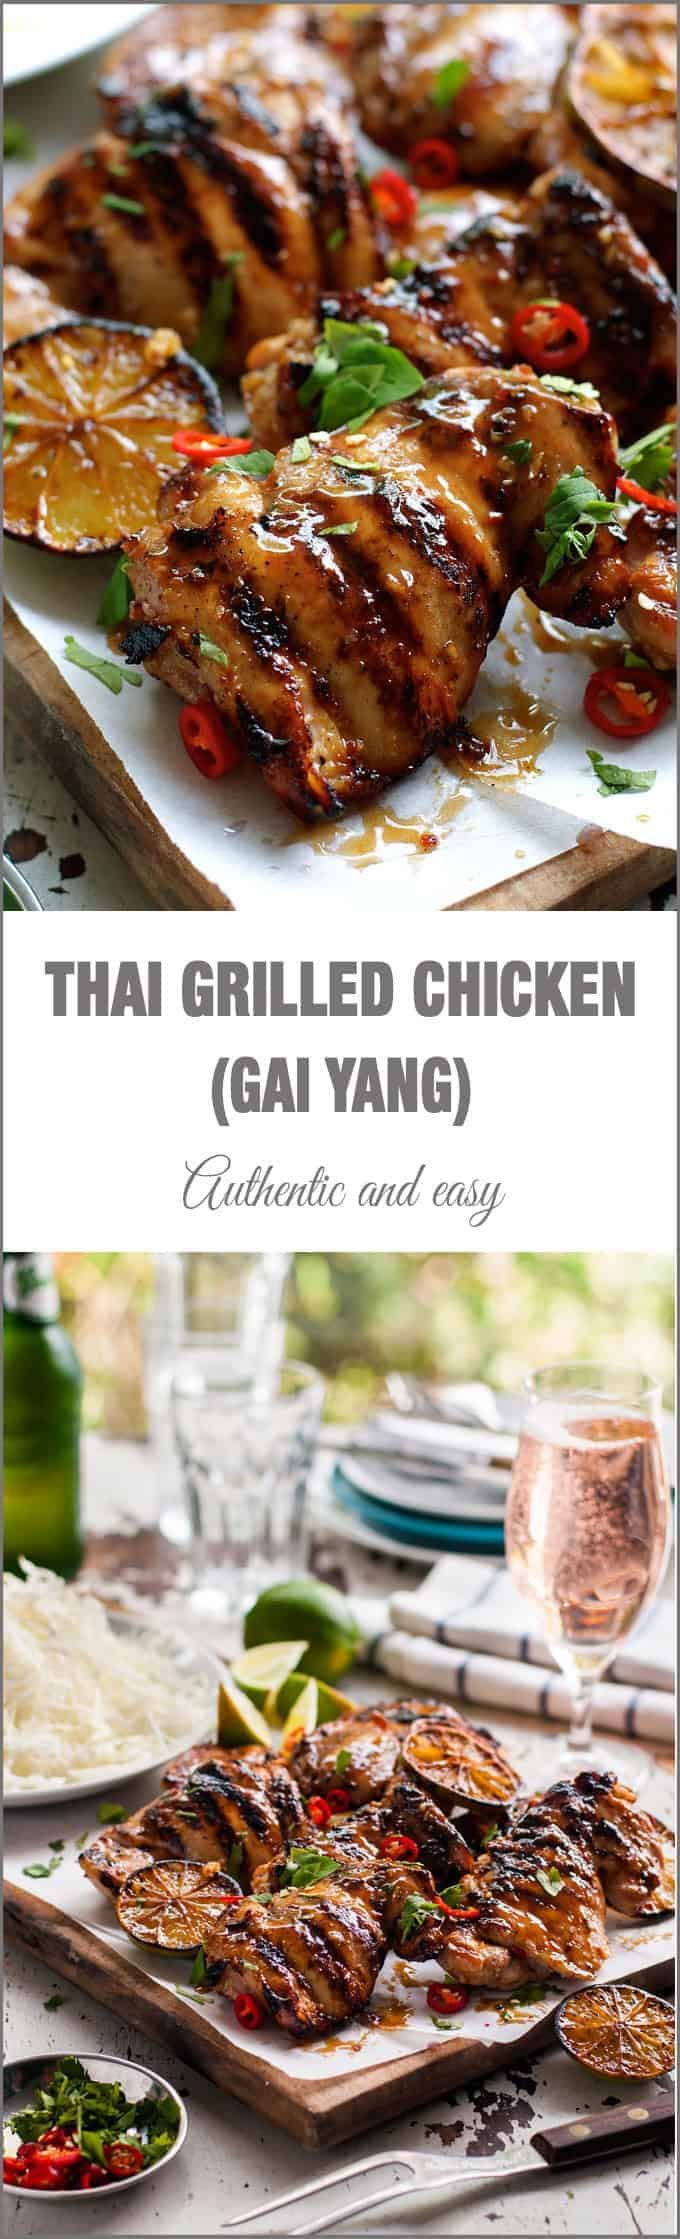 Grilled Marinated Thai Chicken (Gai Yang) | Recipe | Grilled